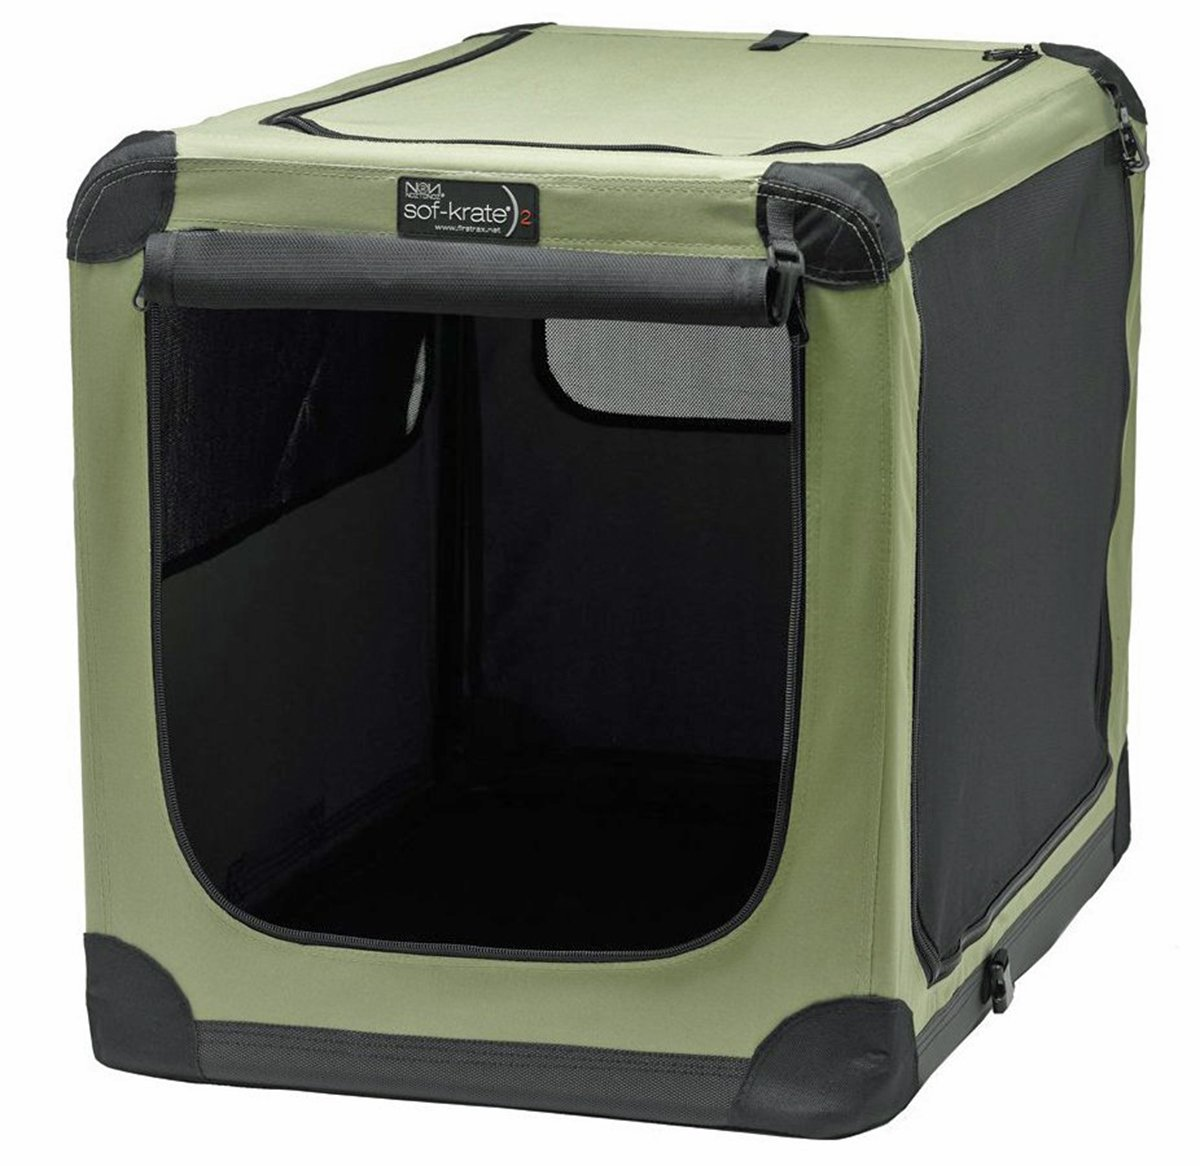 Noz2Noz Soft-Krater Indoor and Outdoor Crate for Pets by Noz2Noz